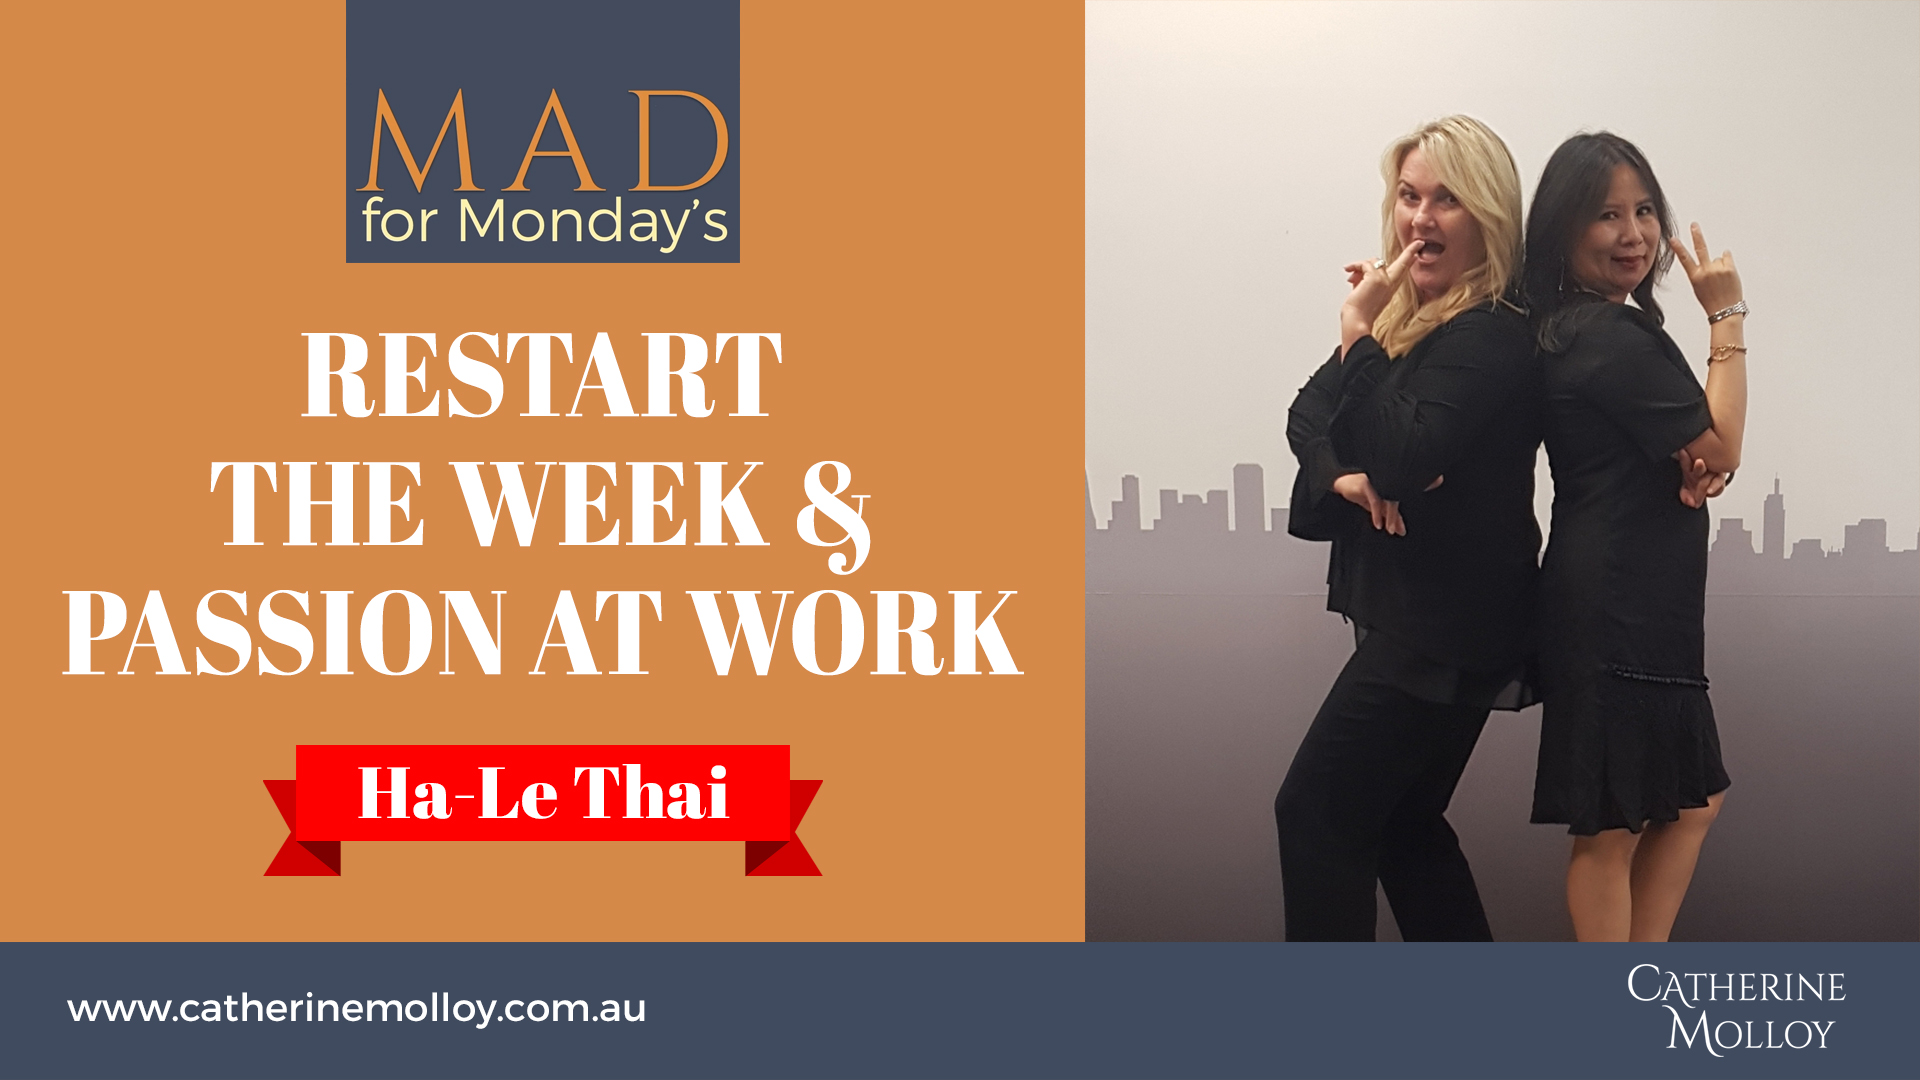 MAD for Monday's – Restart the week and passion at work